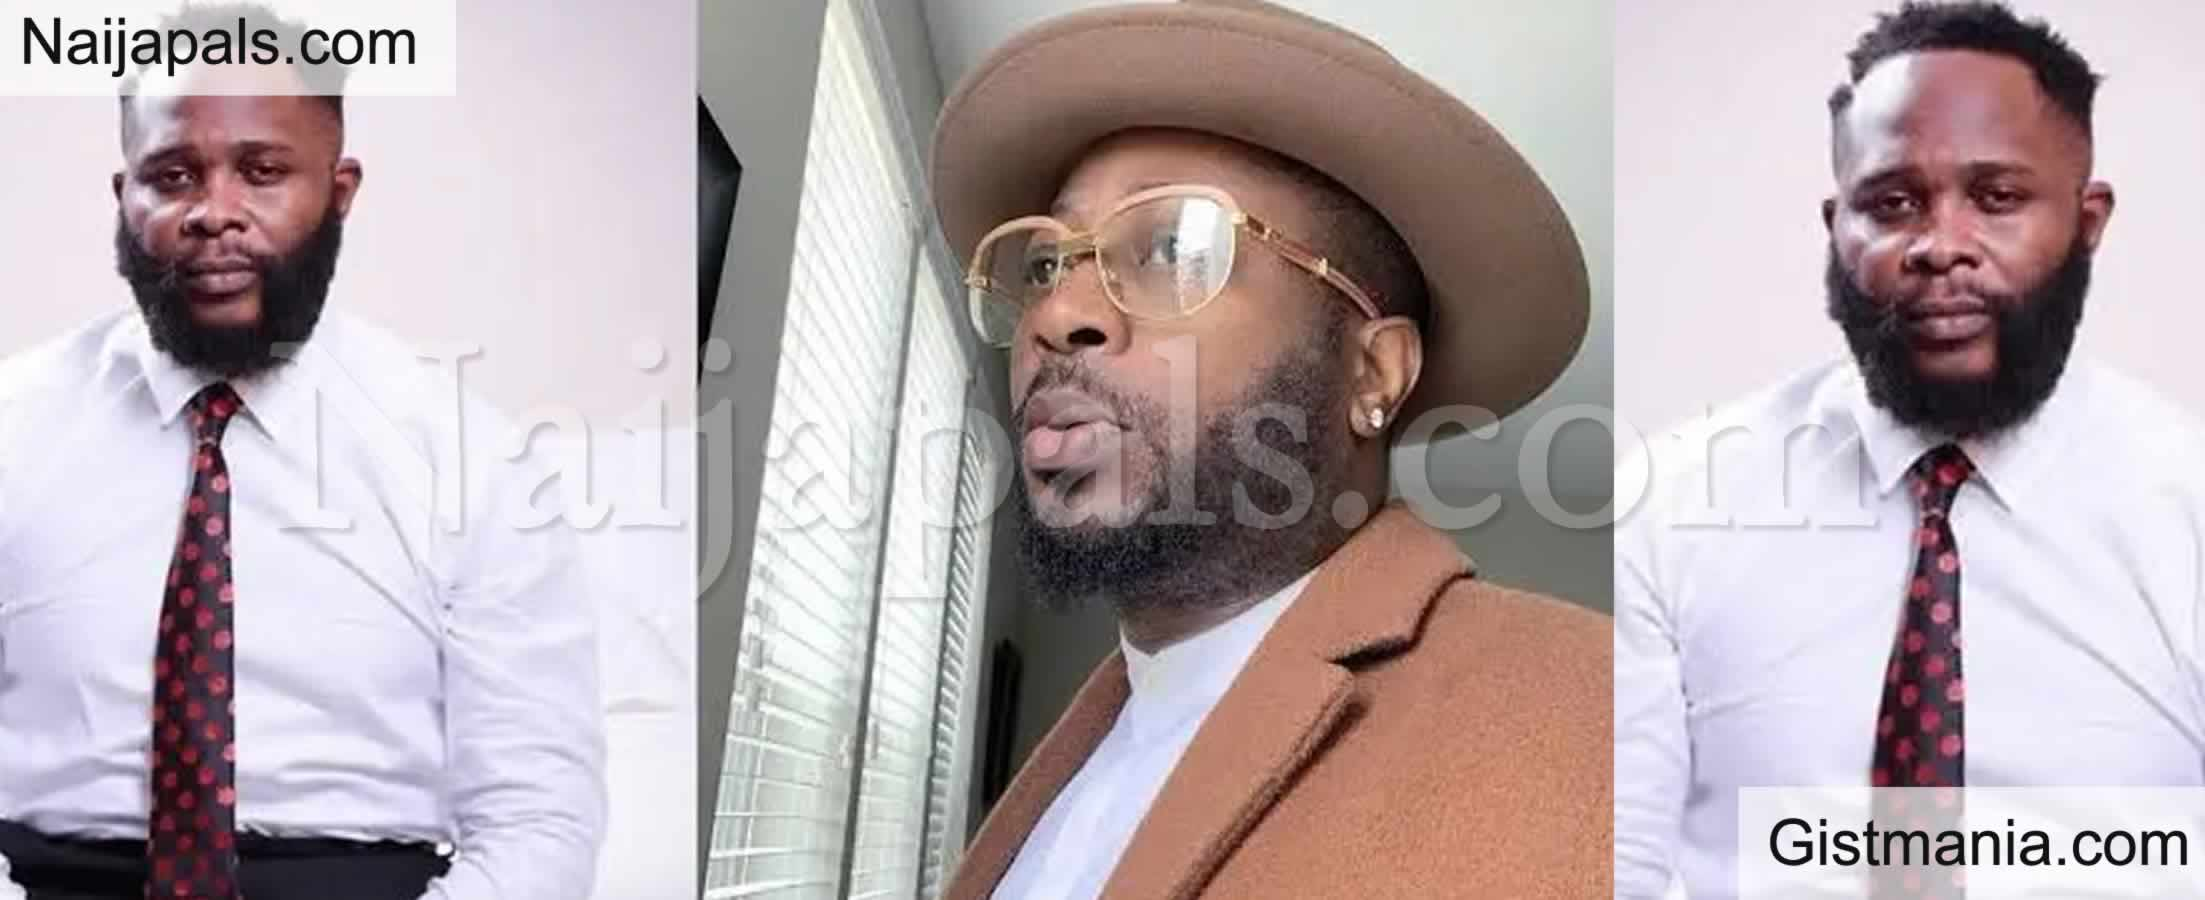 Joro Olumofin Blasts Tunde Ednut For Claiming He Has Psychological Damage Gistmania Tunde posted this picture with a caption very similar to that of the original poster. joro olumofin blasts tunde ednut for